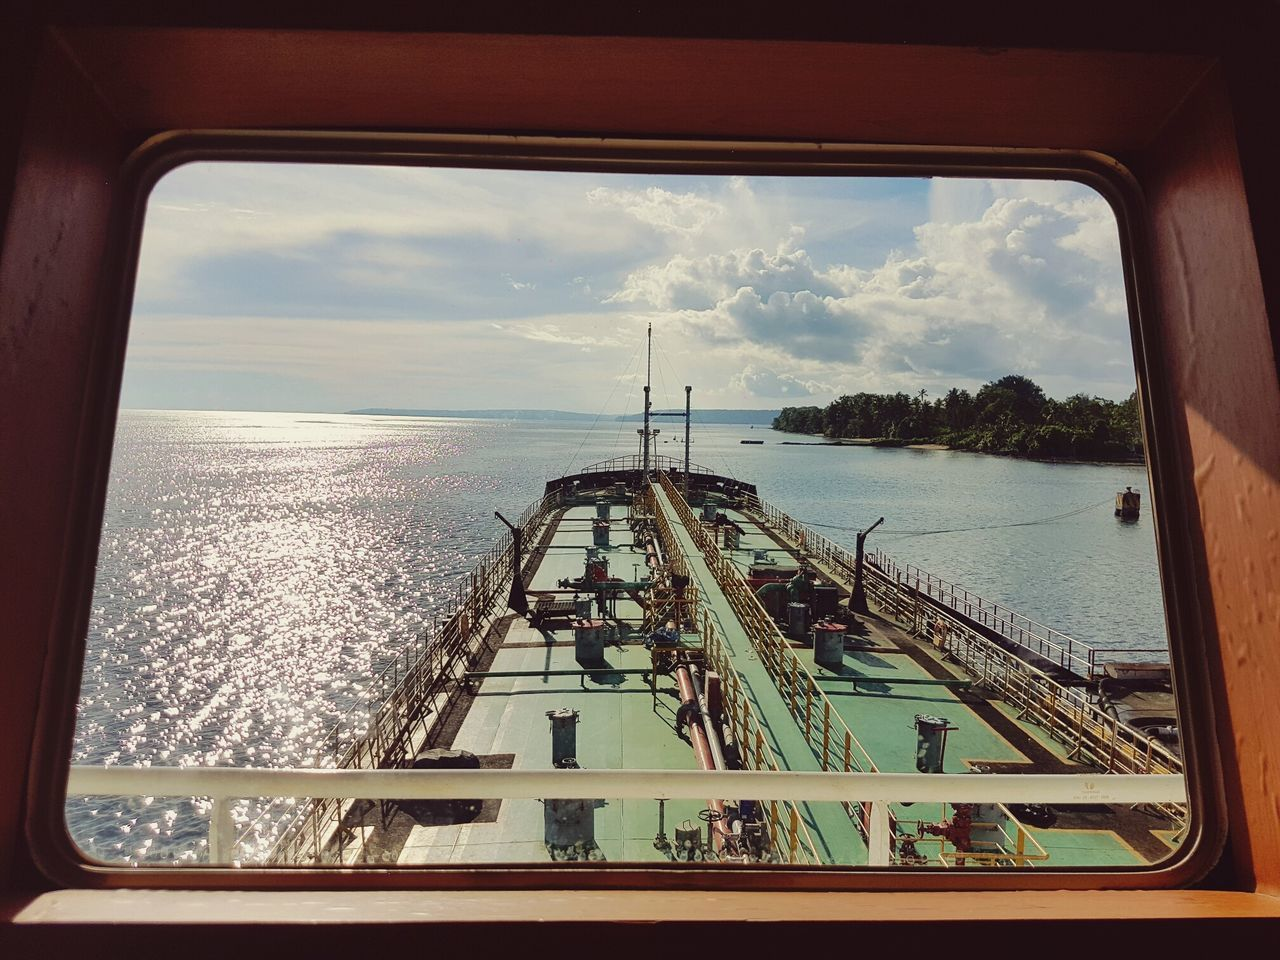 Nautical Vessel Window Tanker Diminishing Perspective Sailing Harbor Cloud Transparent Sea Ship Transportation Sky Biak Papua Indonesia